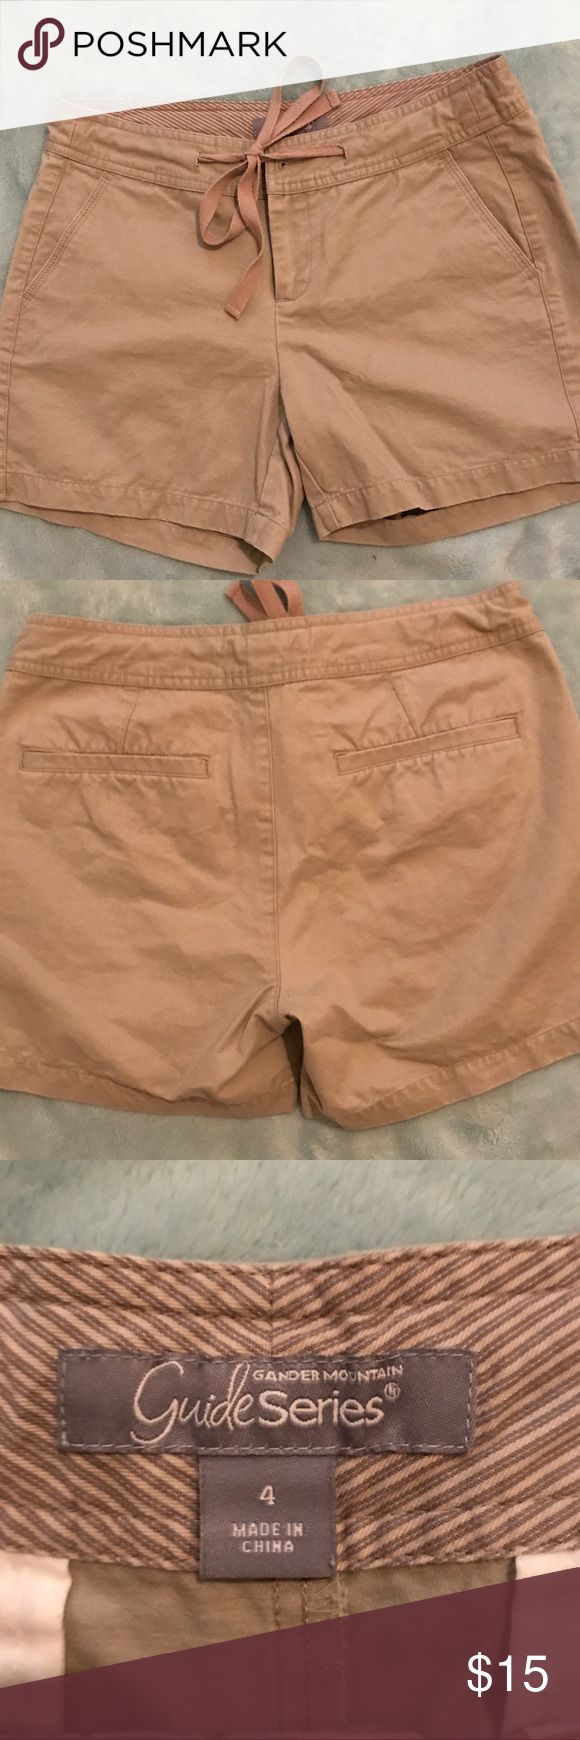 GANDER MOUNTAIN GUIDE SERIES WOMEN'S SHORTS SIZE 4 Gander Mountain Guide Series khaki shorts with drawstring and button waist- size 4 ladies- excellent condition 🛍 BUNDLE & SAVE!! 4 item limit per bundle due to shipping weight restrictions Gander Mountain Guide Series Shorts